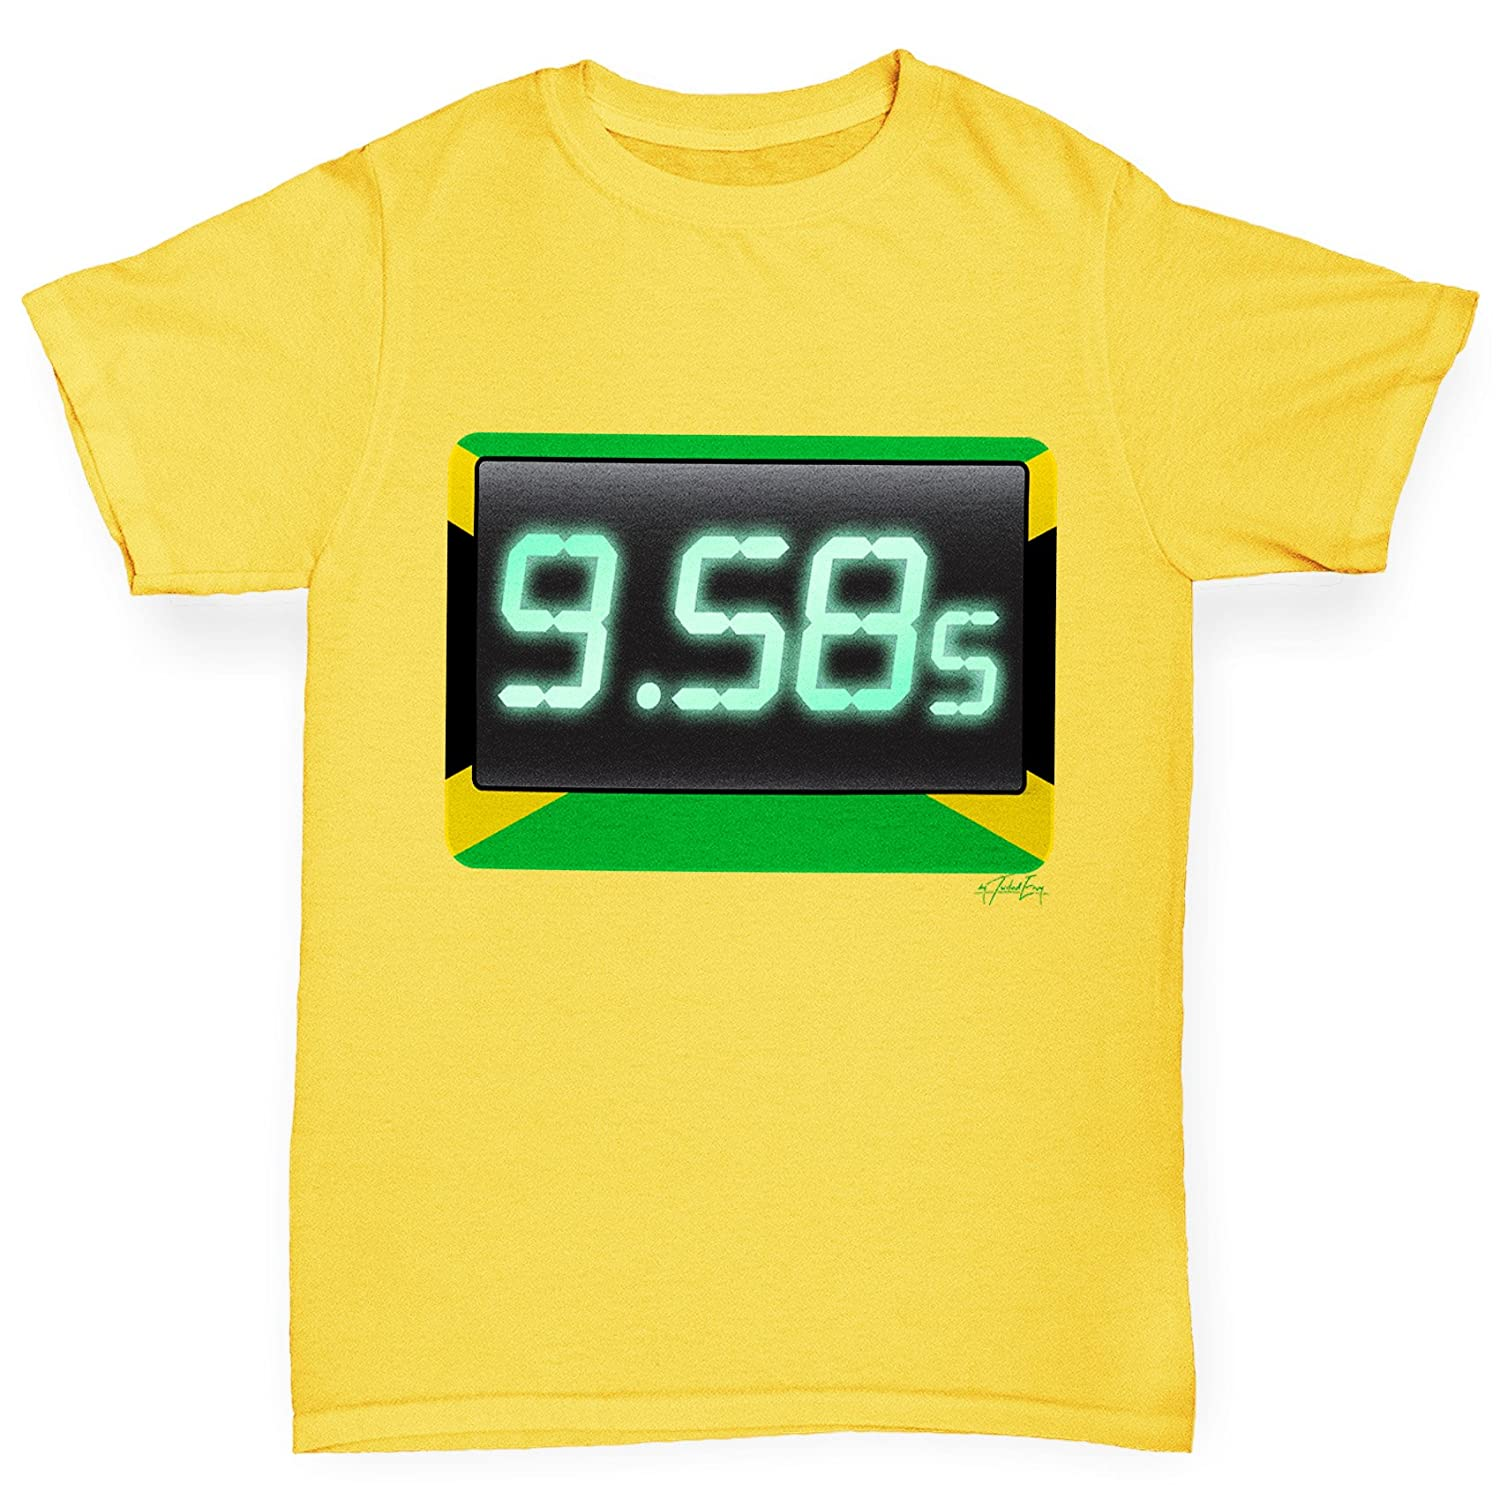 TWISTED ENVY 100 Metres Sprint World Record Boy's T-Shirt